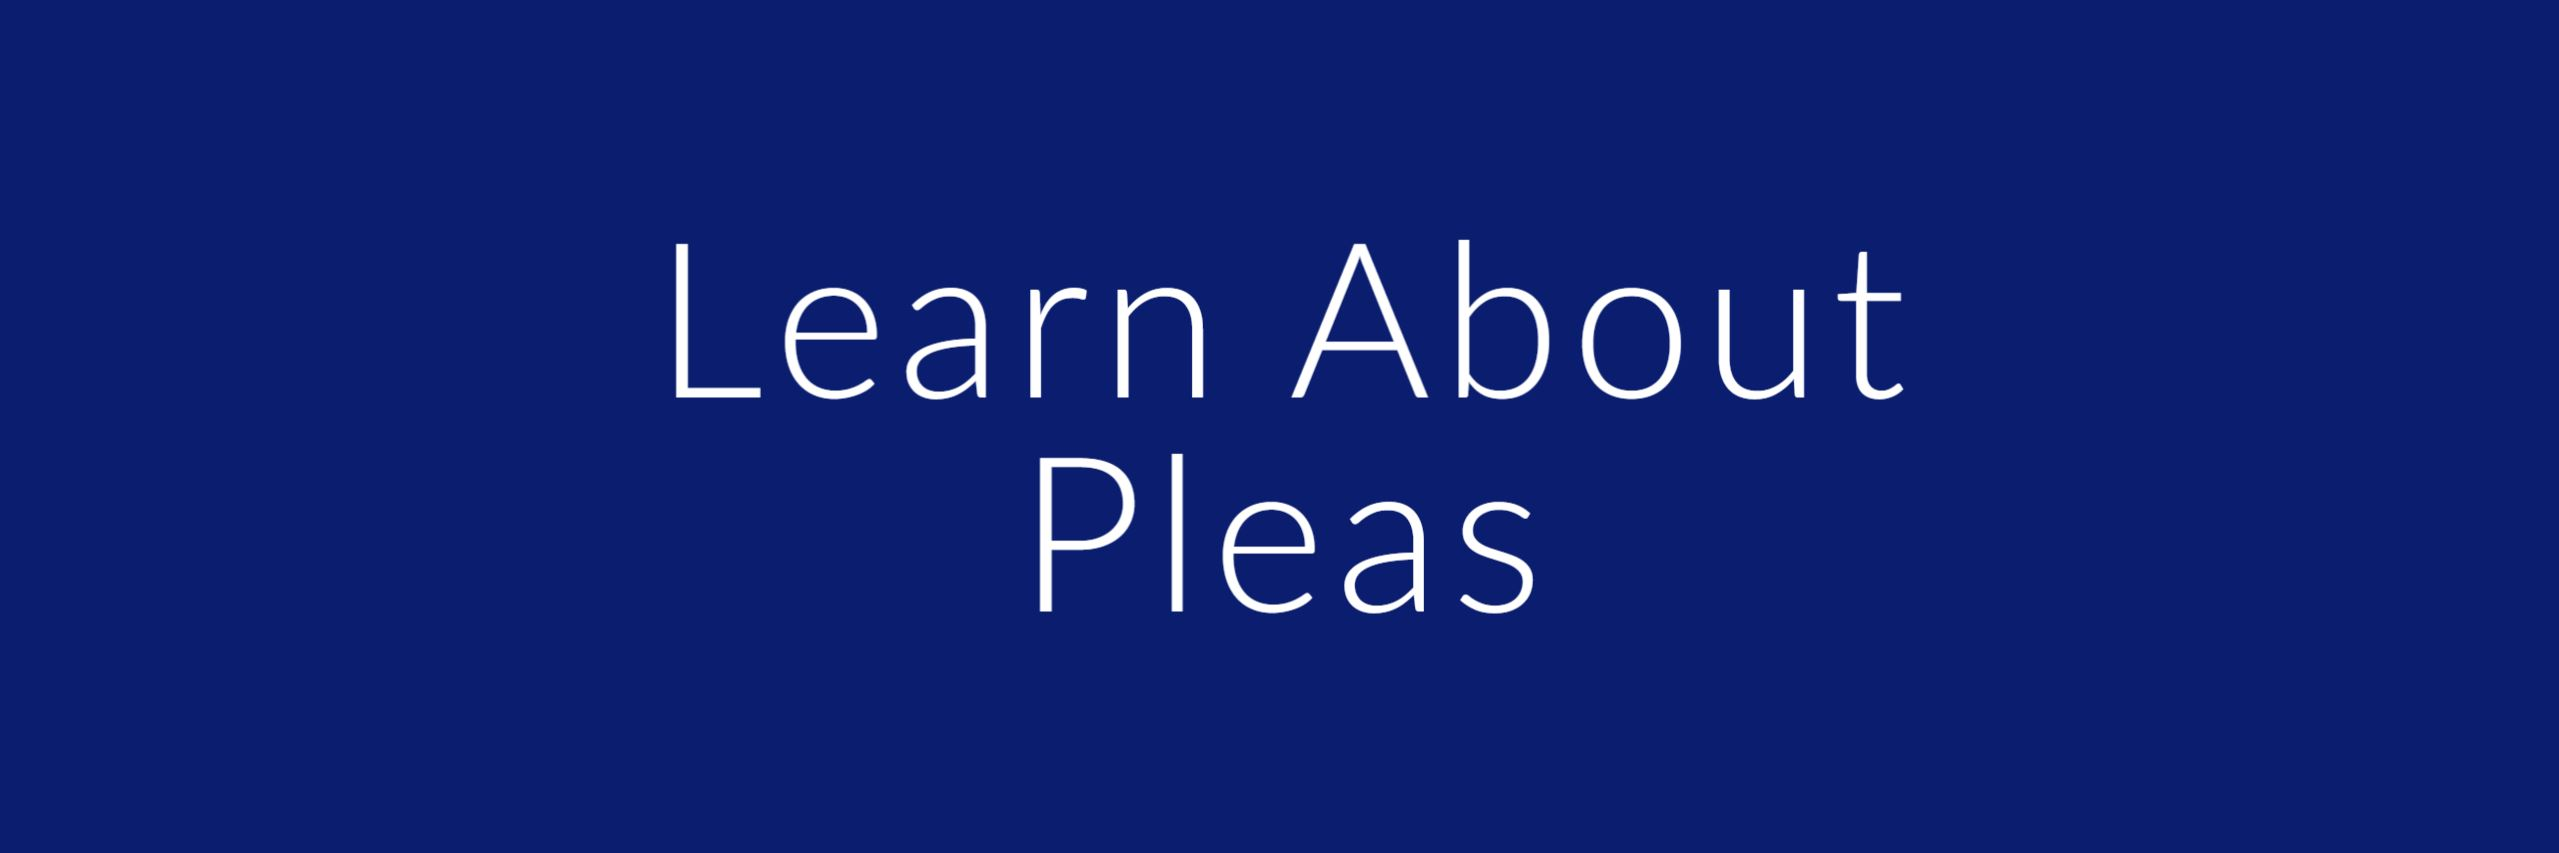 learn about pleas button